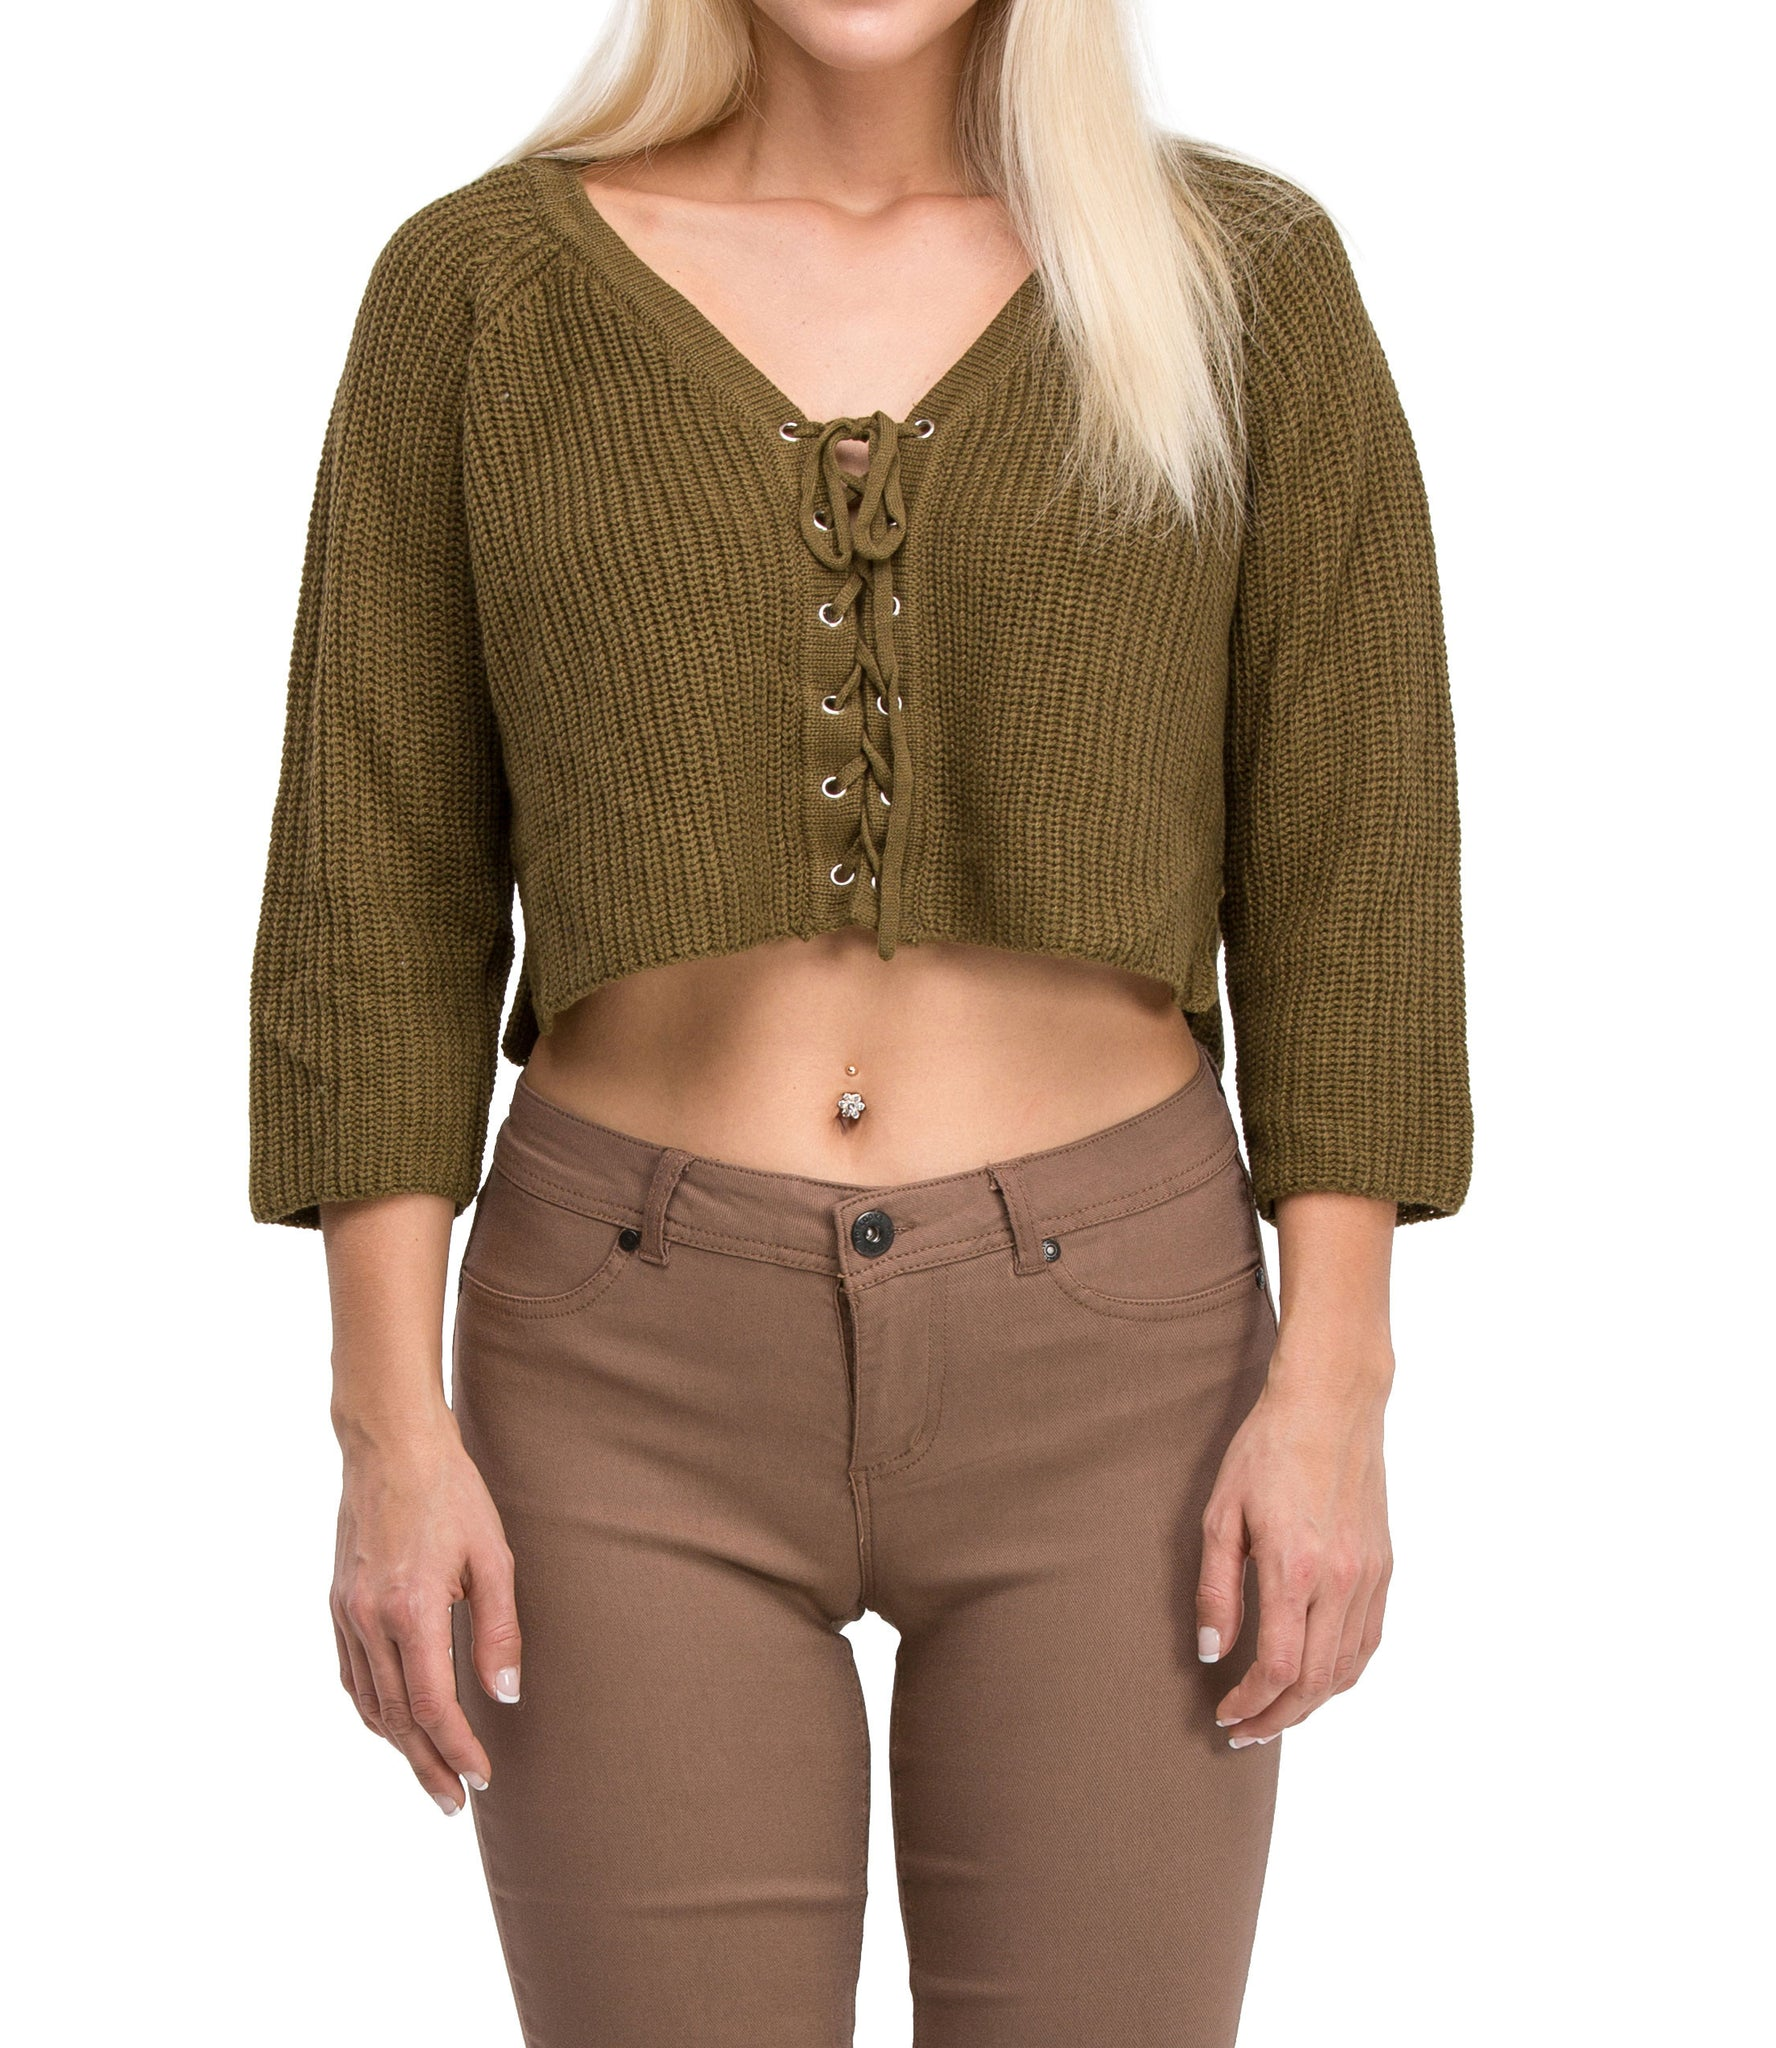 Irresistible Sexy Medium Sleeve Lace Up Crop Top Sweater (Olive)